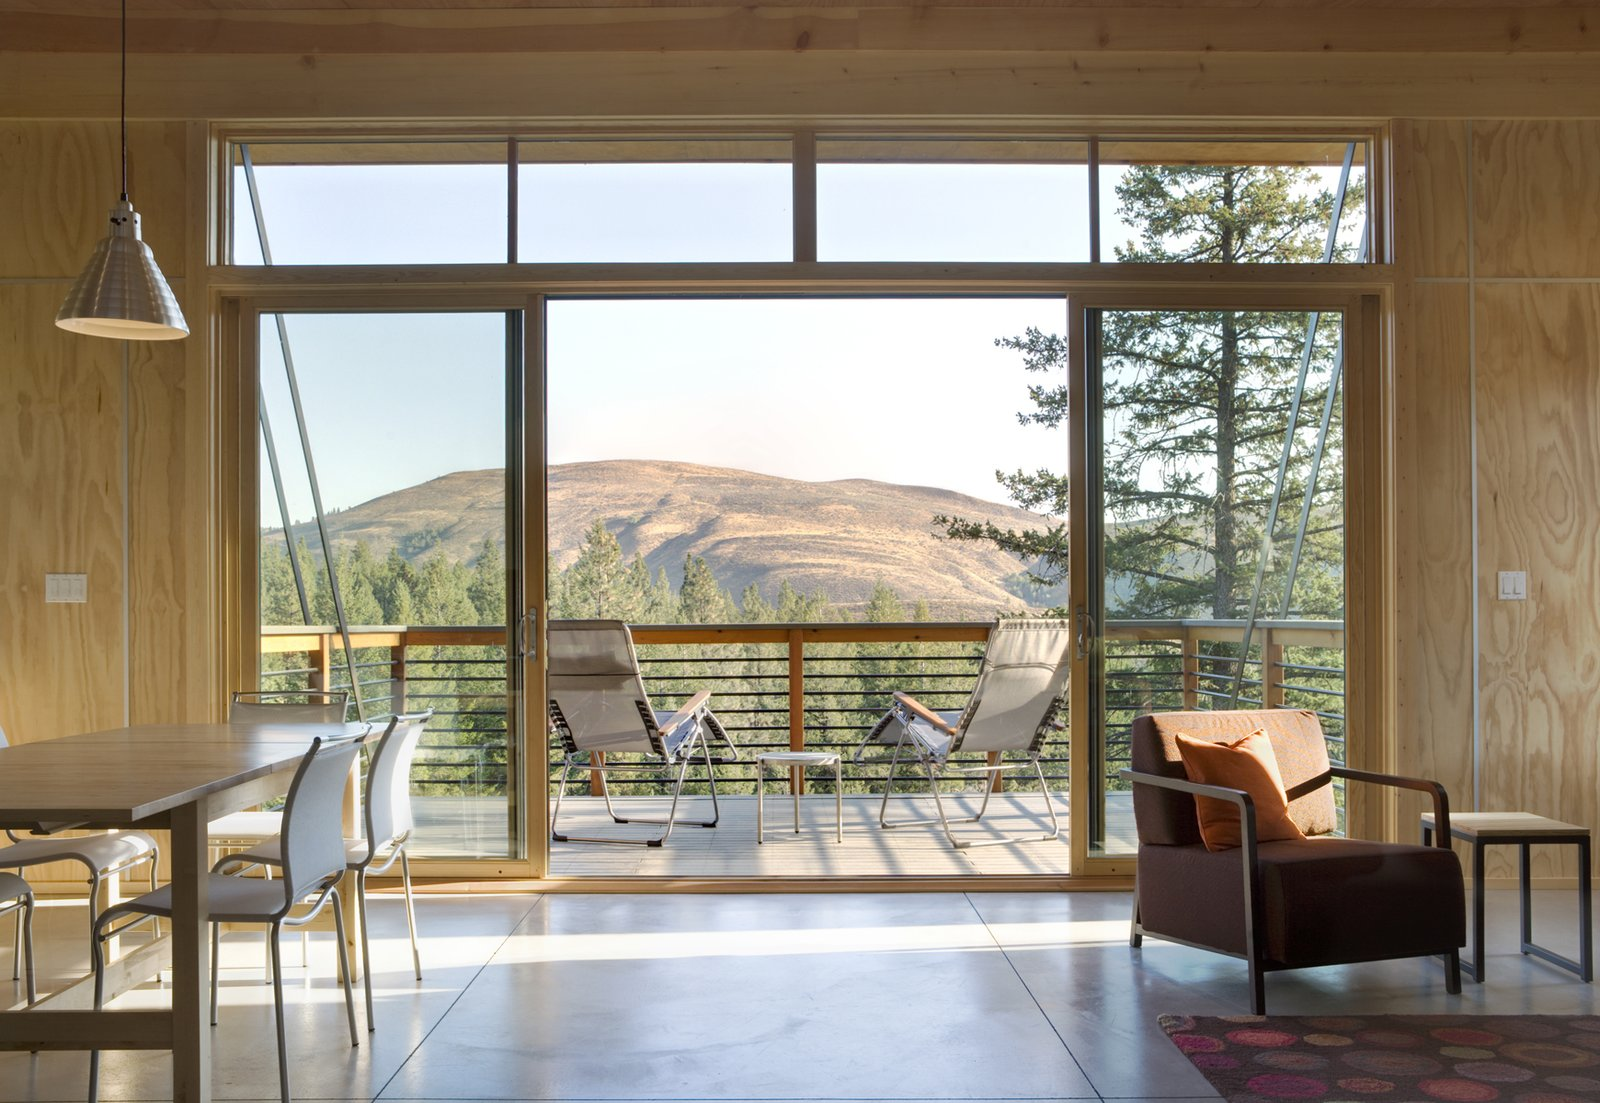 Supported by steel strips, the balcony extends outwards to meet the valley below. Fully-glazed sliding doors and a clerestory window provide a view.  Simple Cabin Embraces Its Mountain Setting by Zachary Edelson